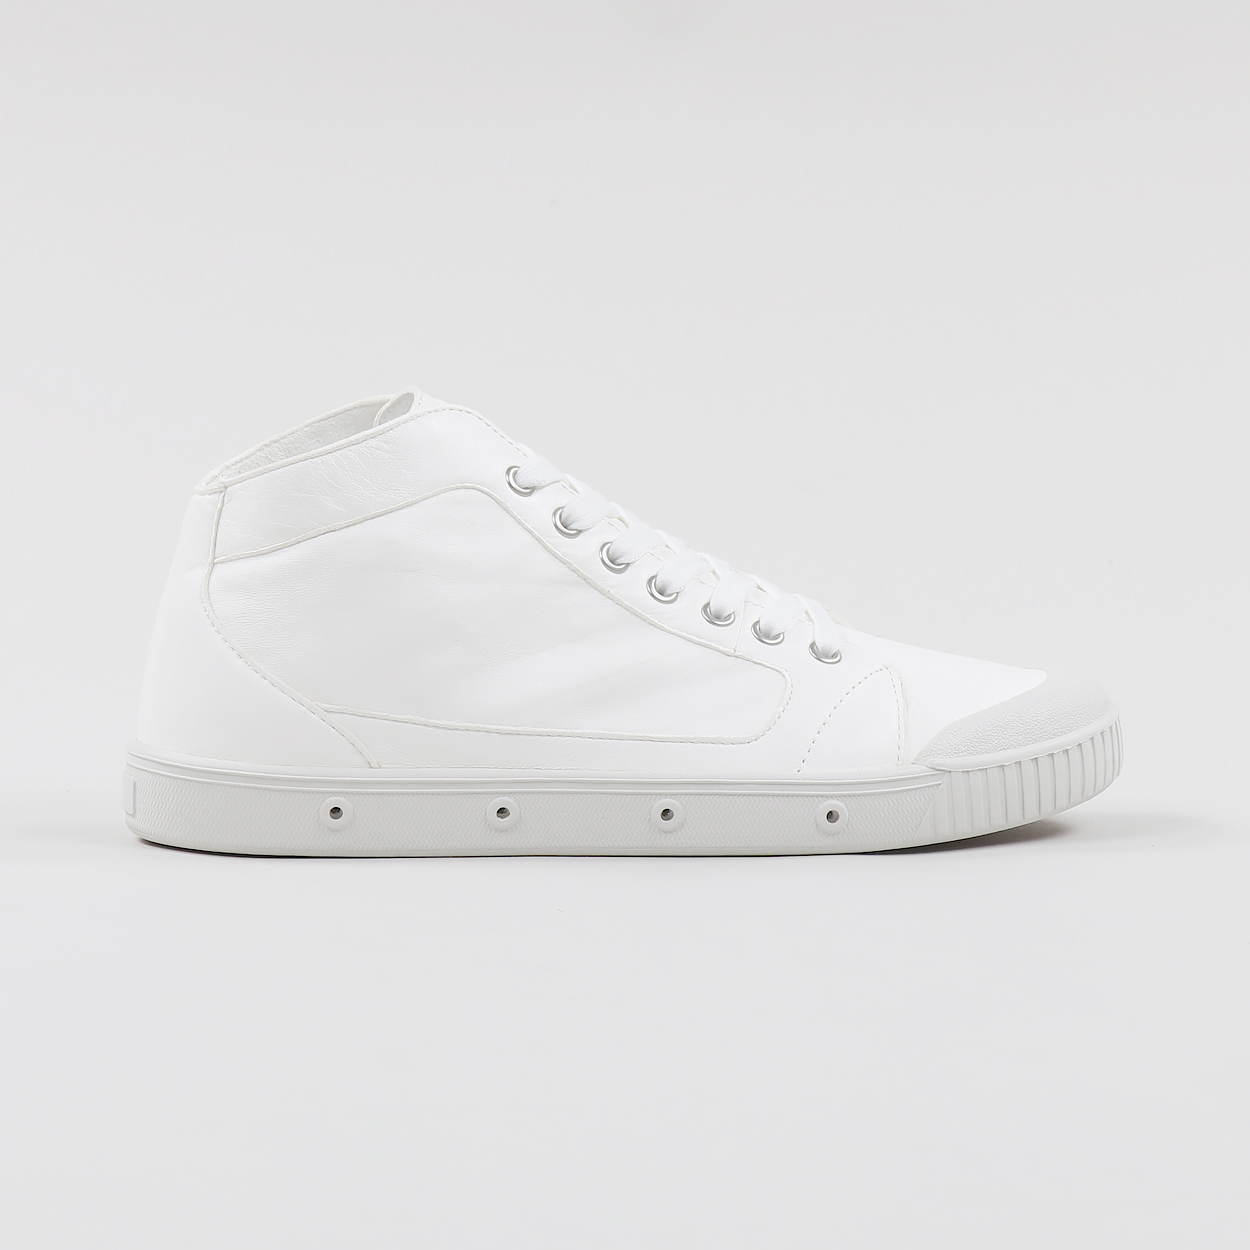 b0f74be2b8f Spring Court M2 Lambskin Leather Mid Top Tennis Shoes White £102.86